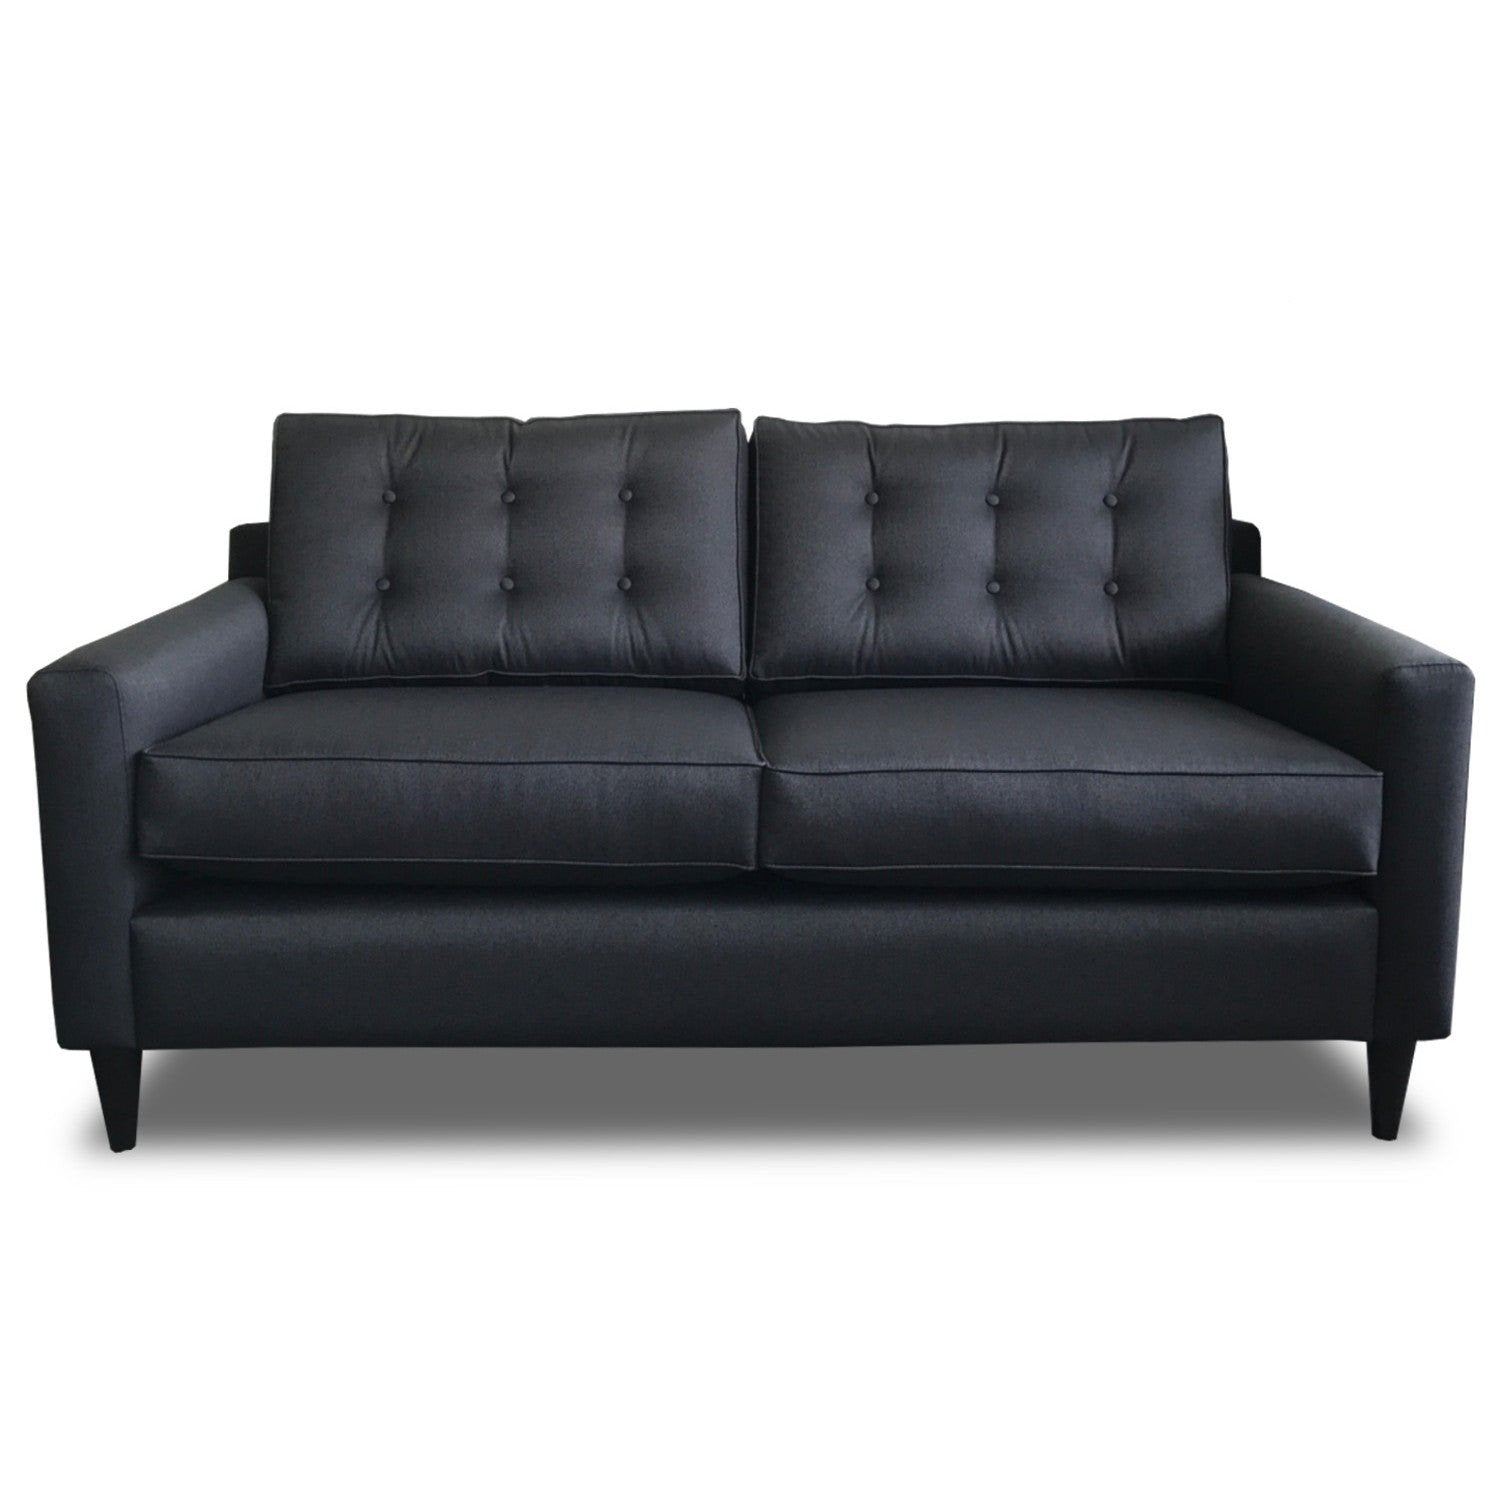 Manhattan 2 Seater Sofa - The Furniture Store & The Bed Shop